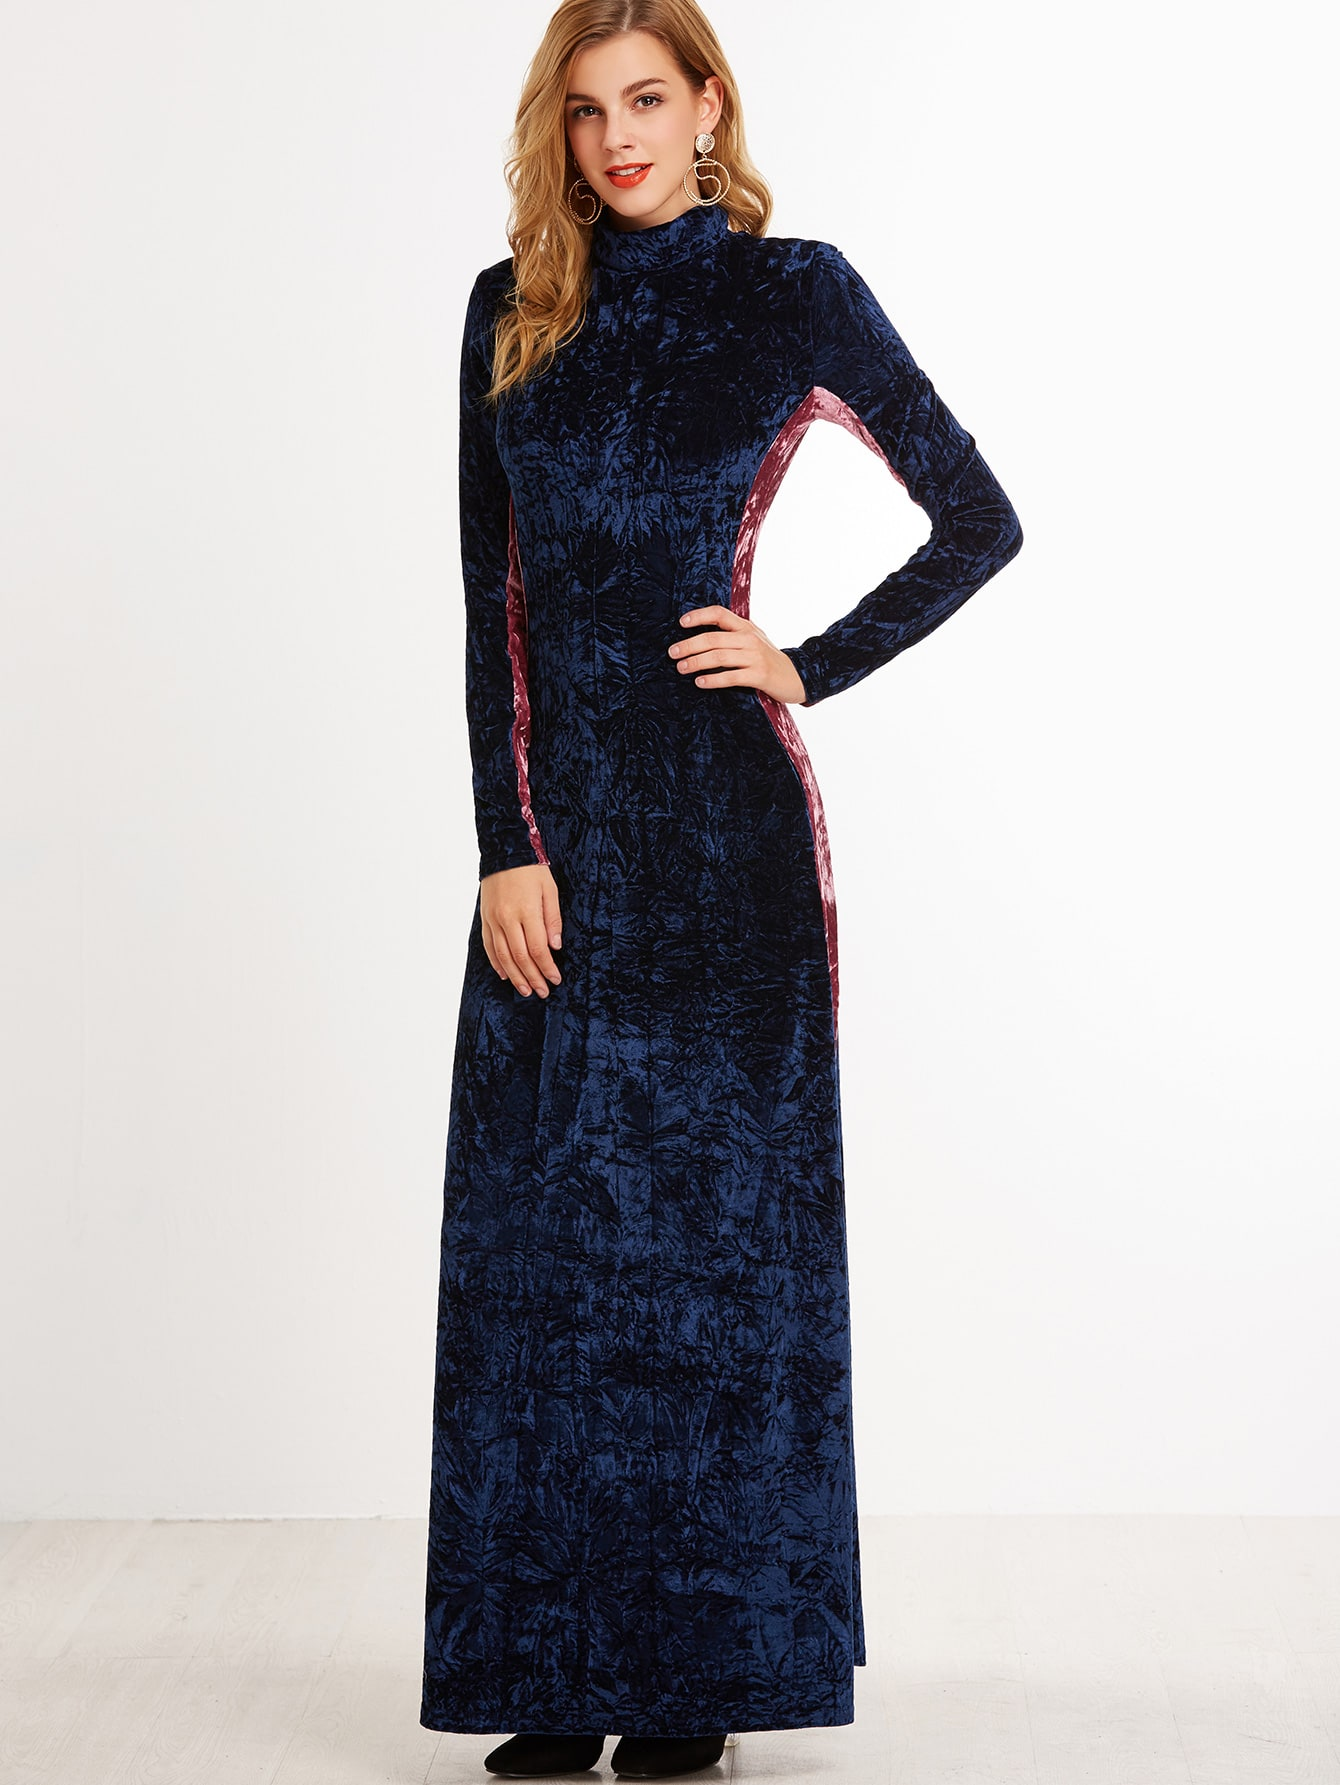 Navy Contrast Panel Mock Neck Crushed Velvet Maxi DressNavy Contrast Panel Mock Neck Crushed Velvet Maxi Dress<br><br>color: Navy<br>size: XS